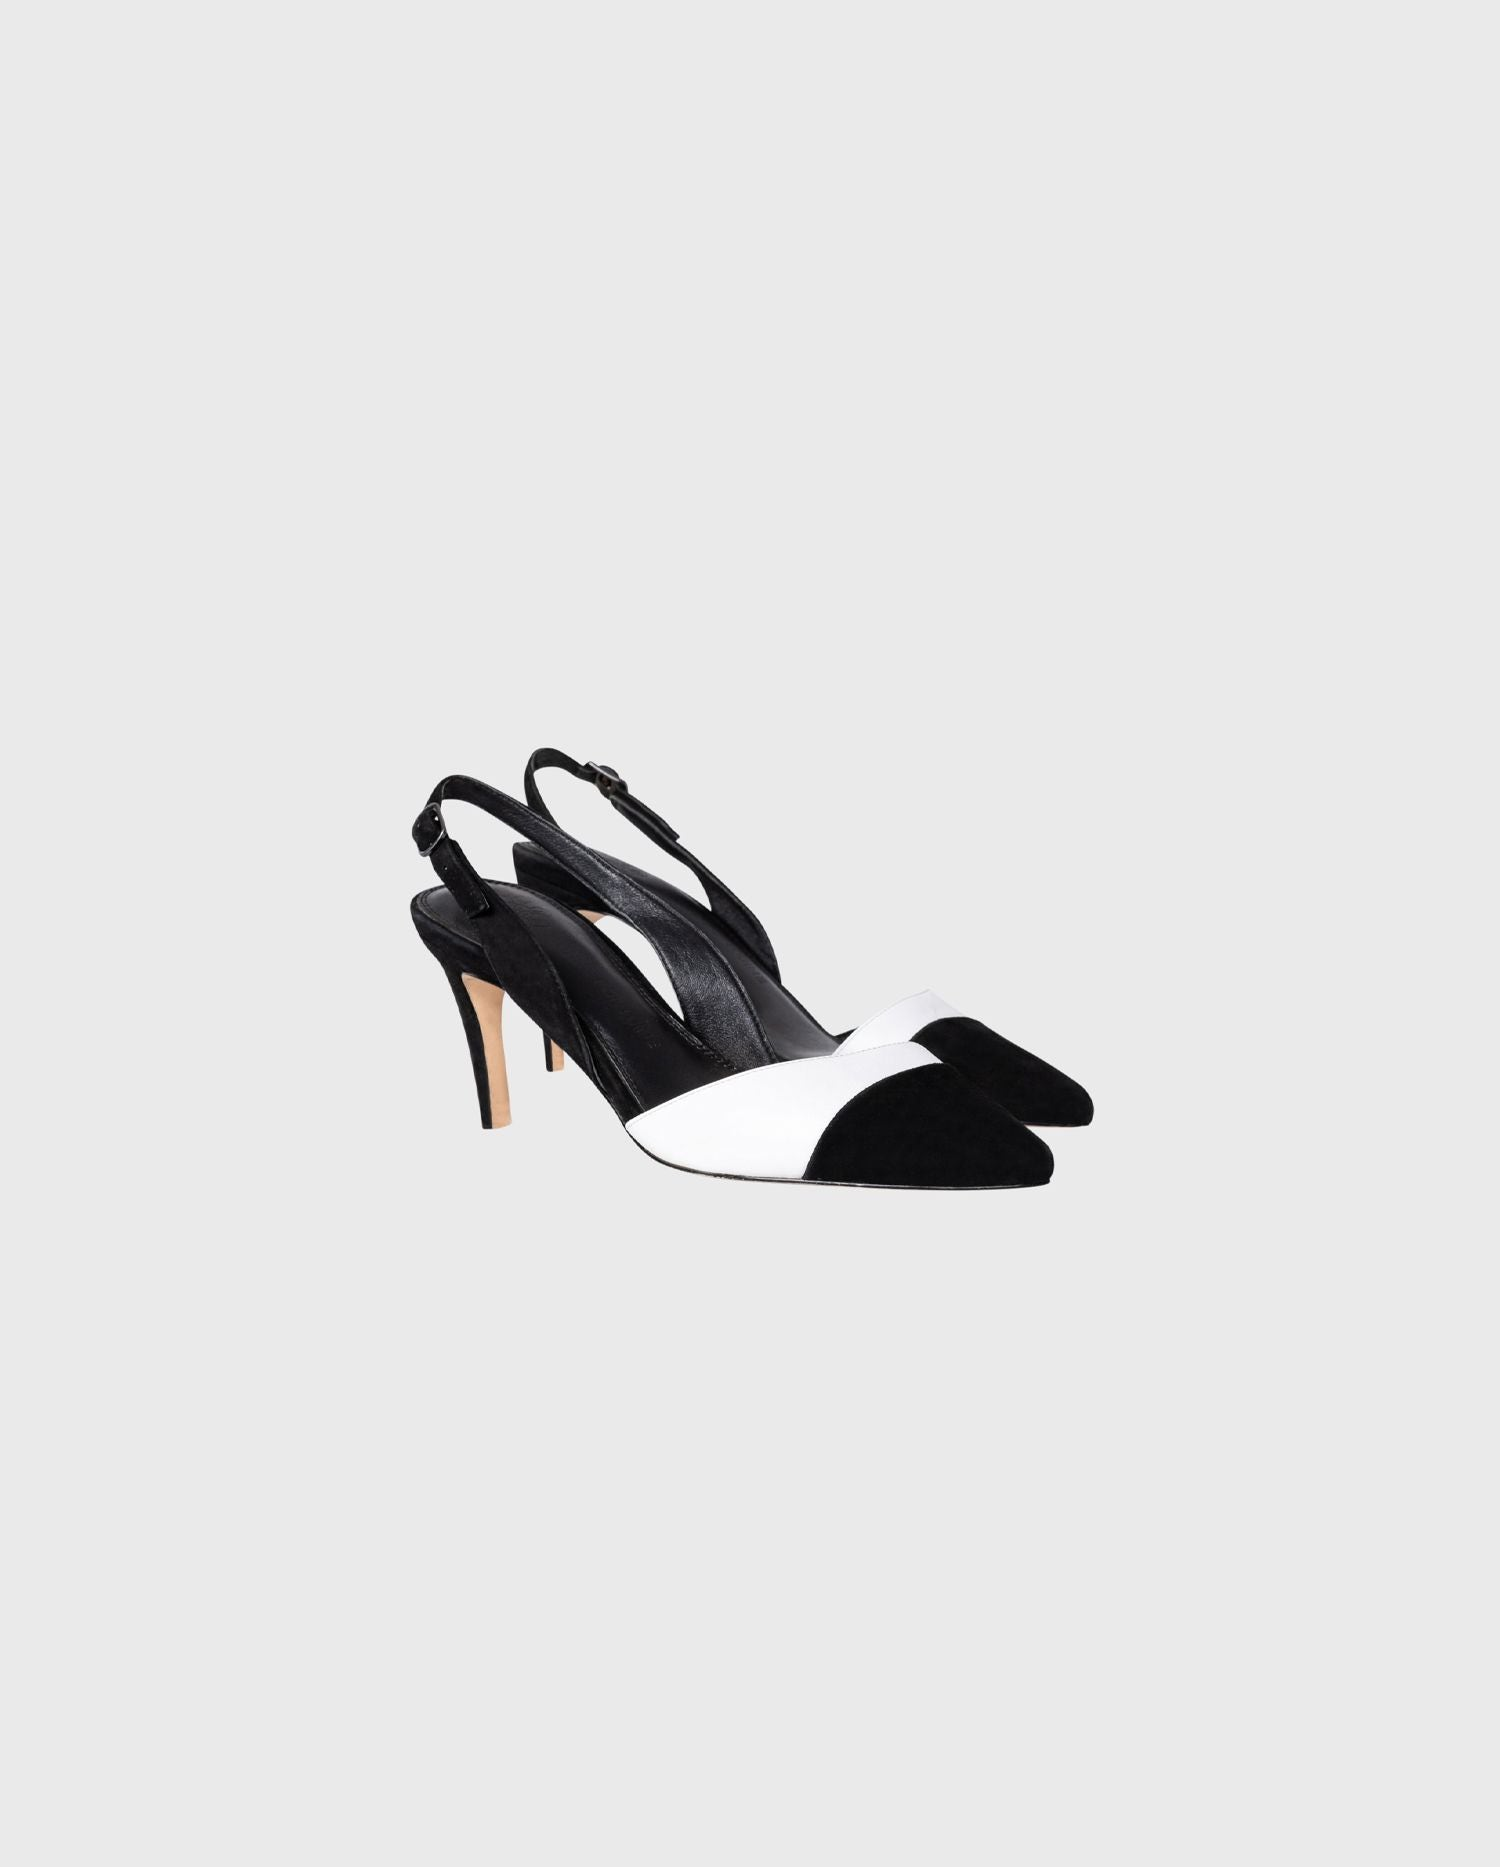 The black and white slingback JAKIE heel will guide you through the seasons with a look of pure chic